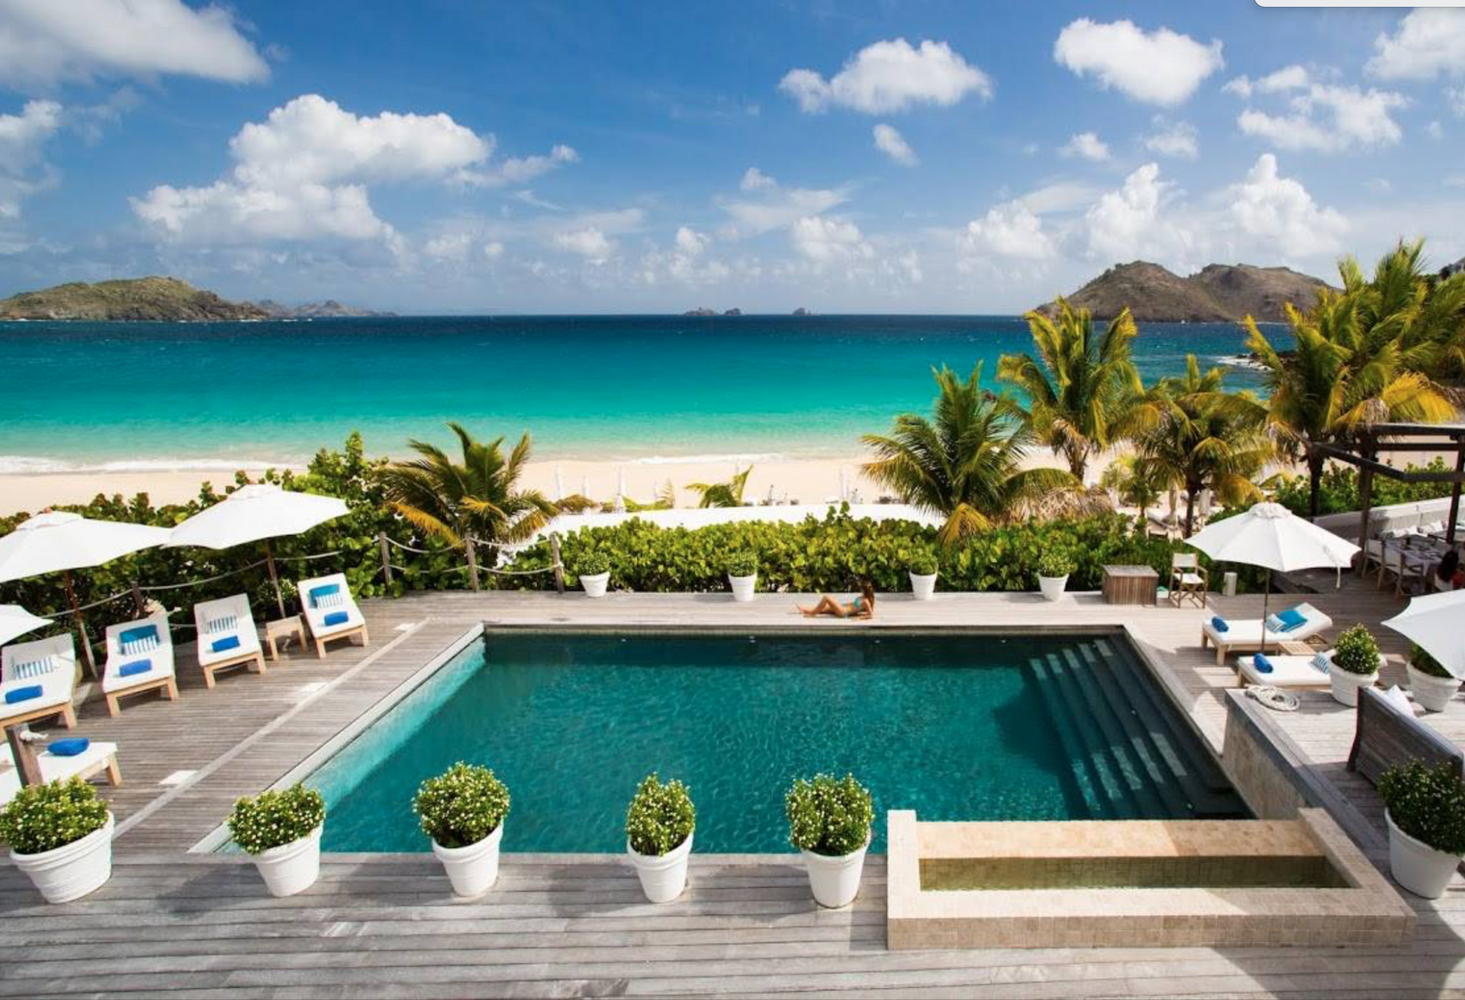 Cloos Life Guide: Top 3 St. Barths Hotels